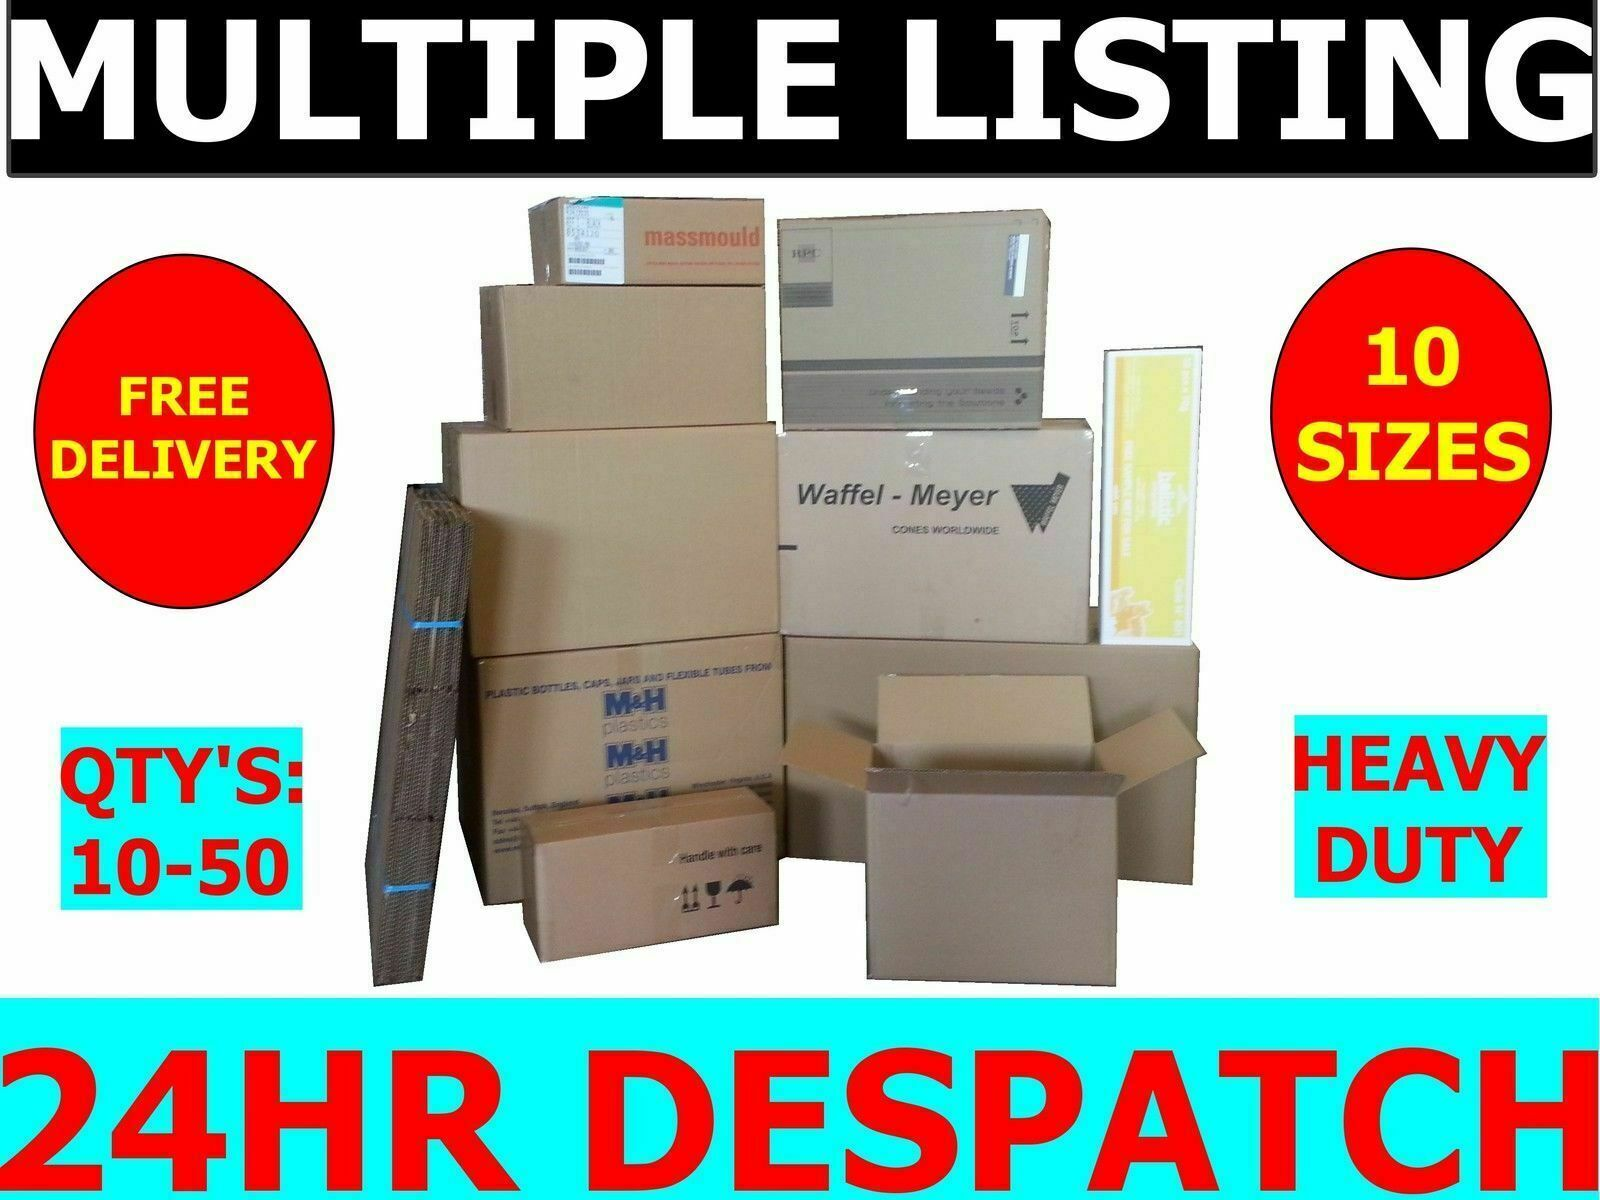 House Removal Storage Strong Cardboard Boxes Various Sizes S   M   L   XL